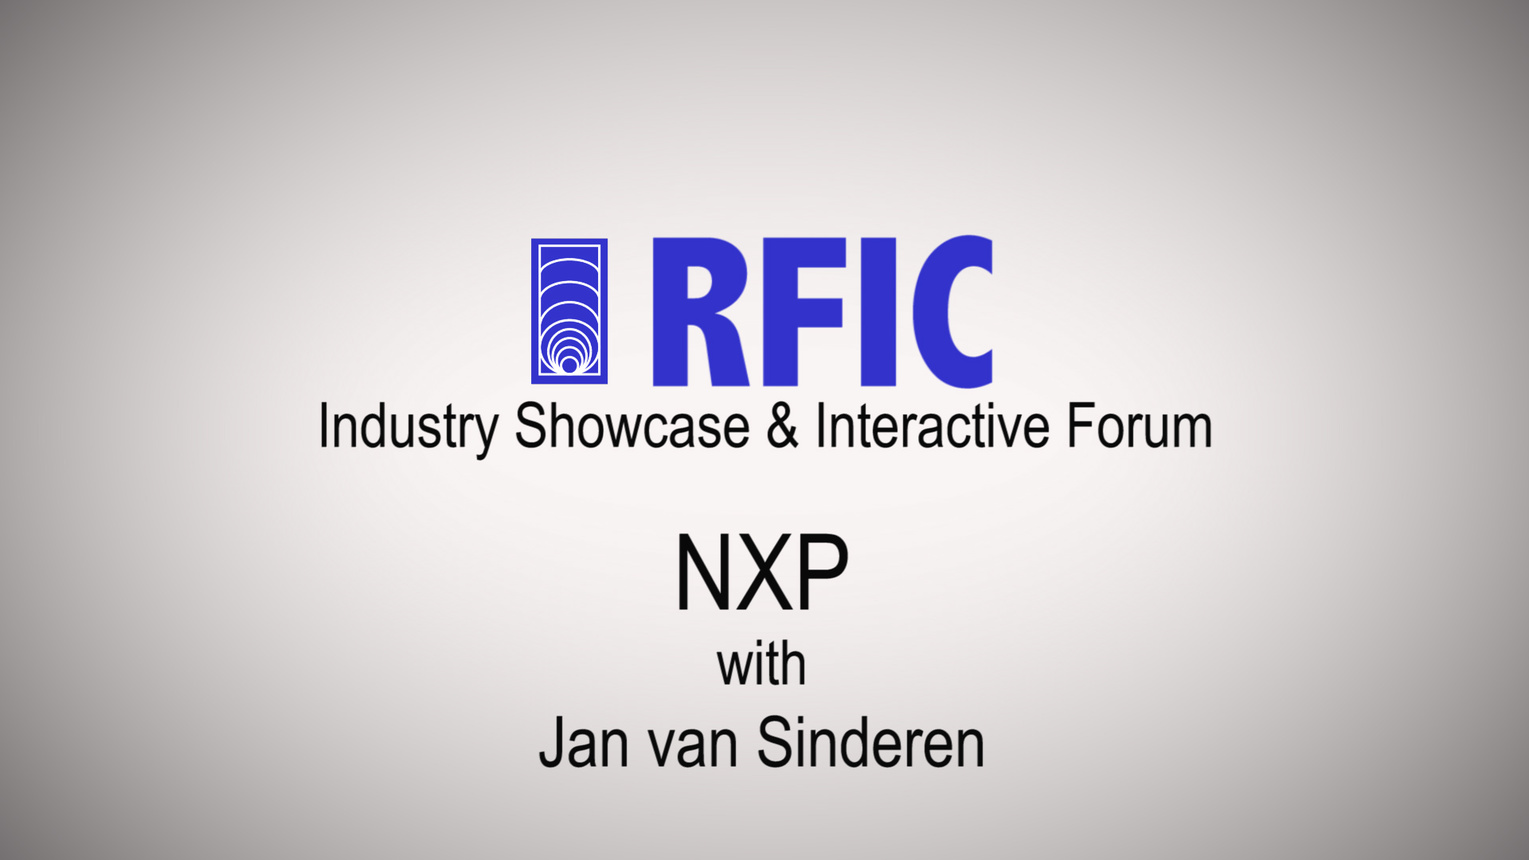 A Wideband Single-PLL RF Receiver for Simultaneous Multi-Band and Multi-Channel Digital Car Radio Reception: RFIC Industry Showcase